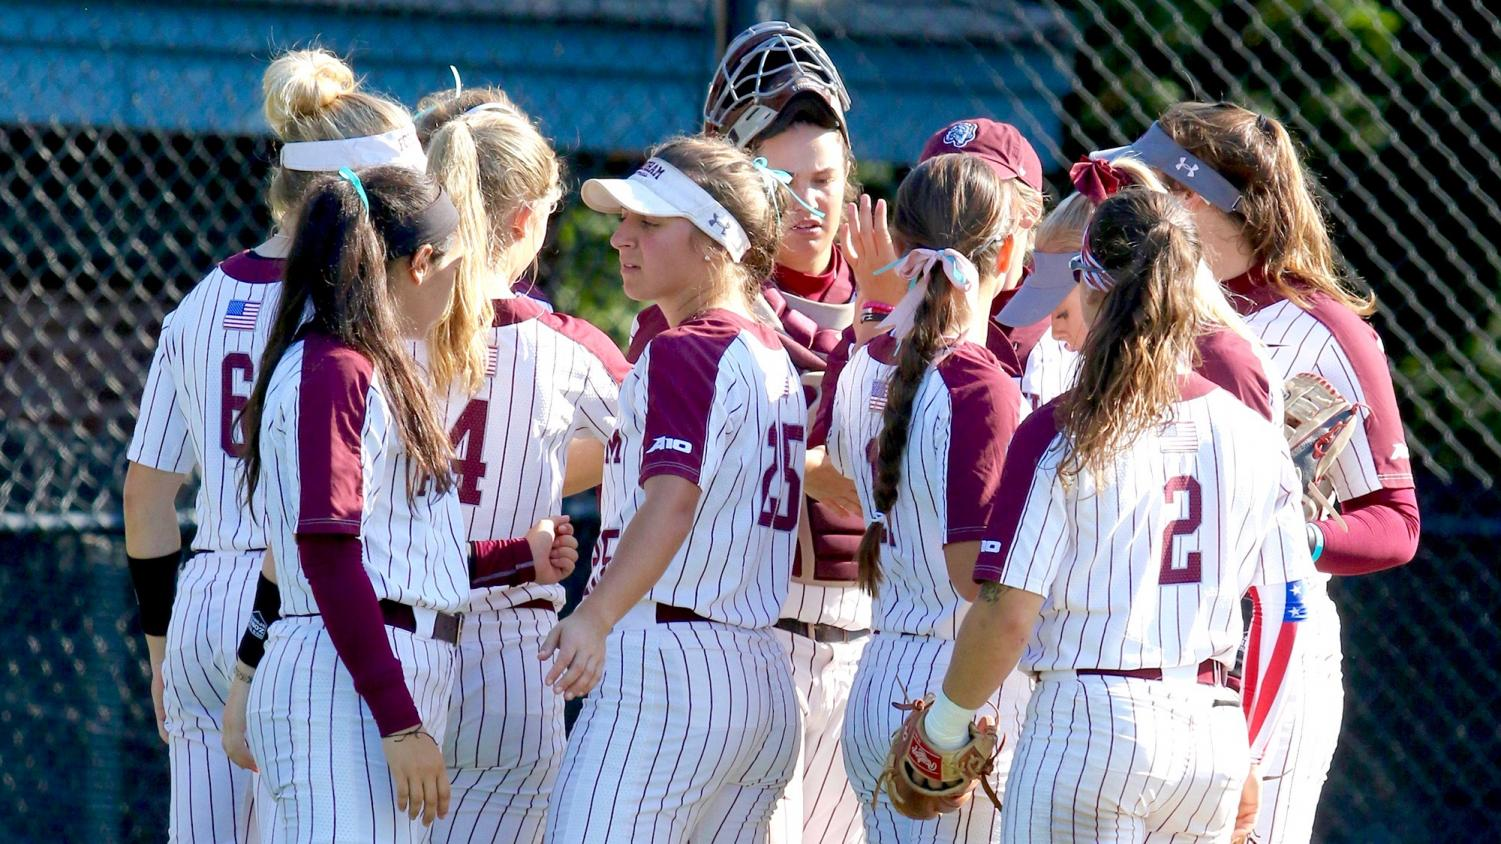 Molly Roark and Madie Auginbaugh were the stars of Fordham Softball's opening weekend. (Courtesy of Fordham Athletics)